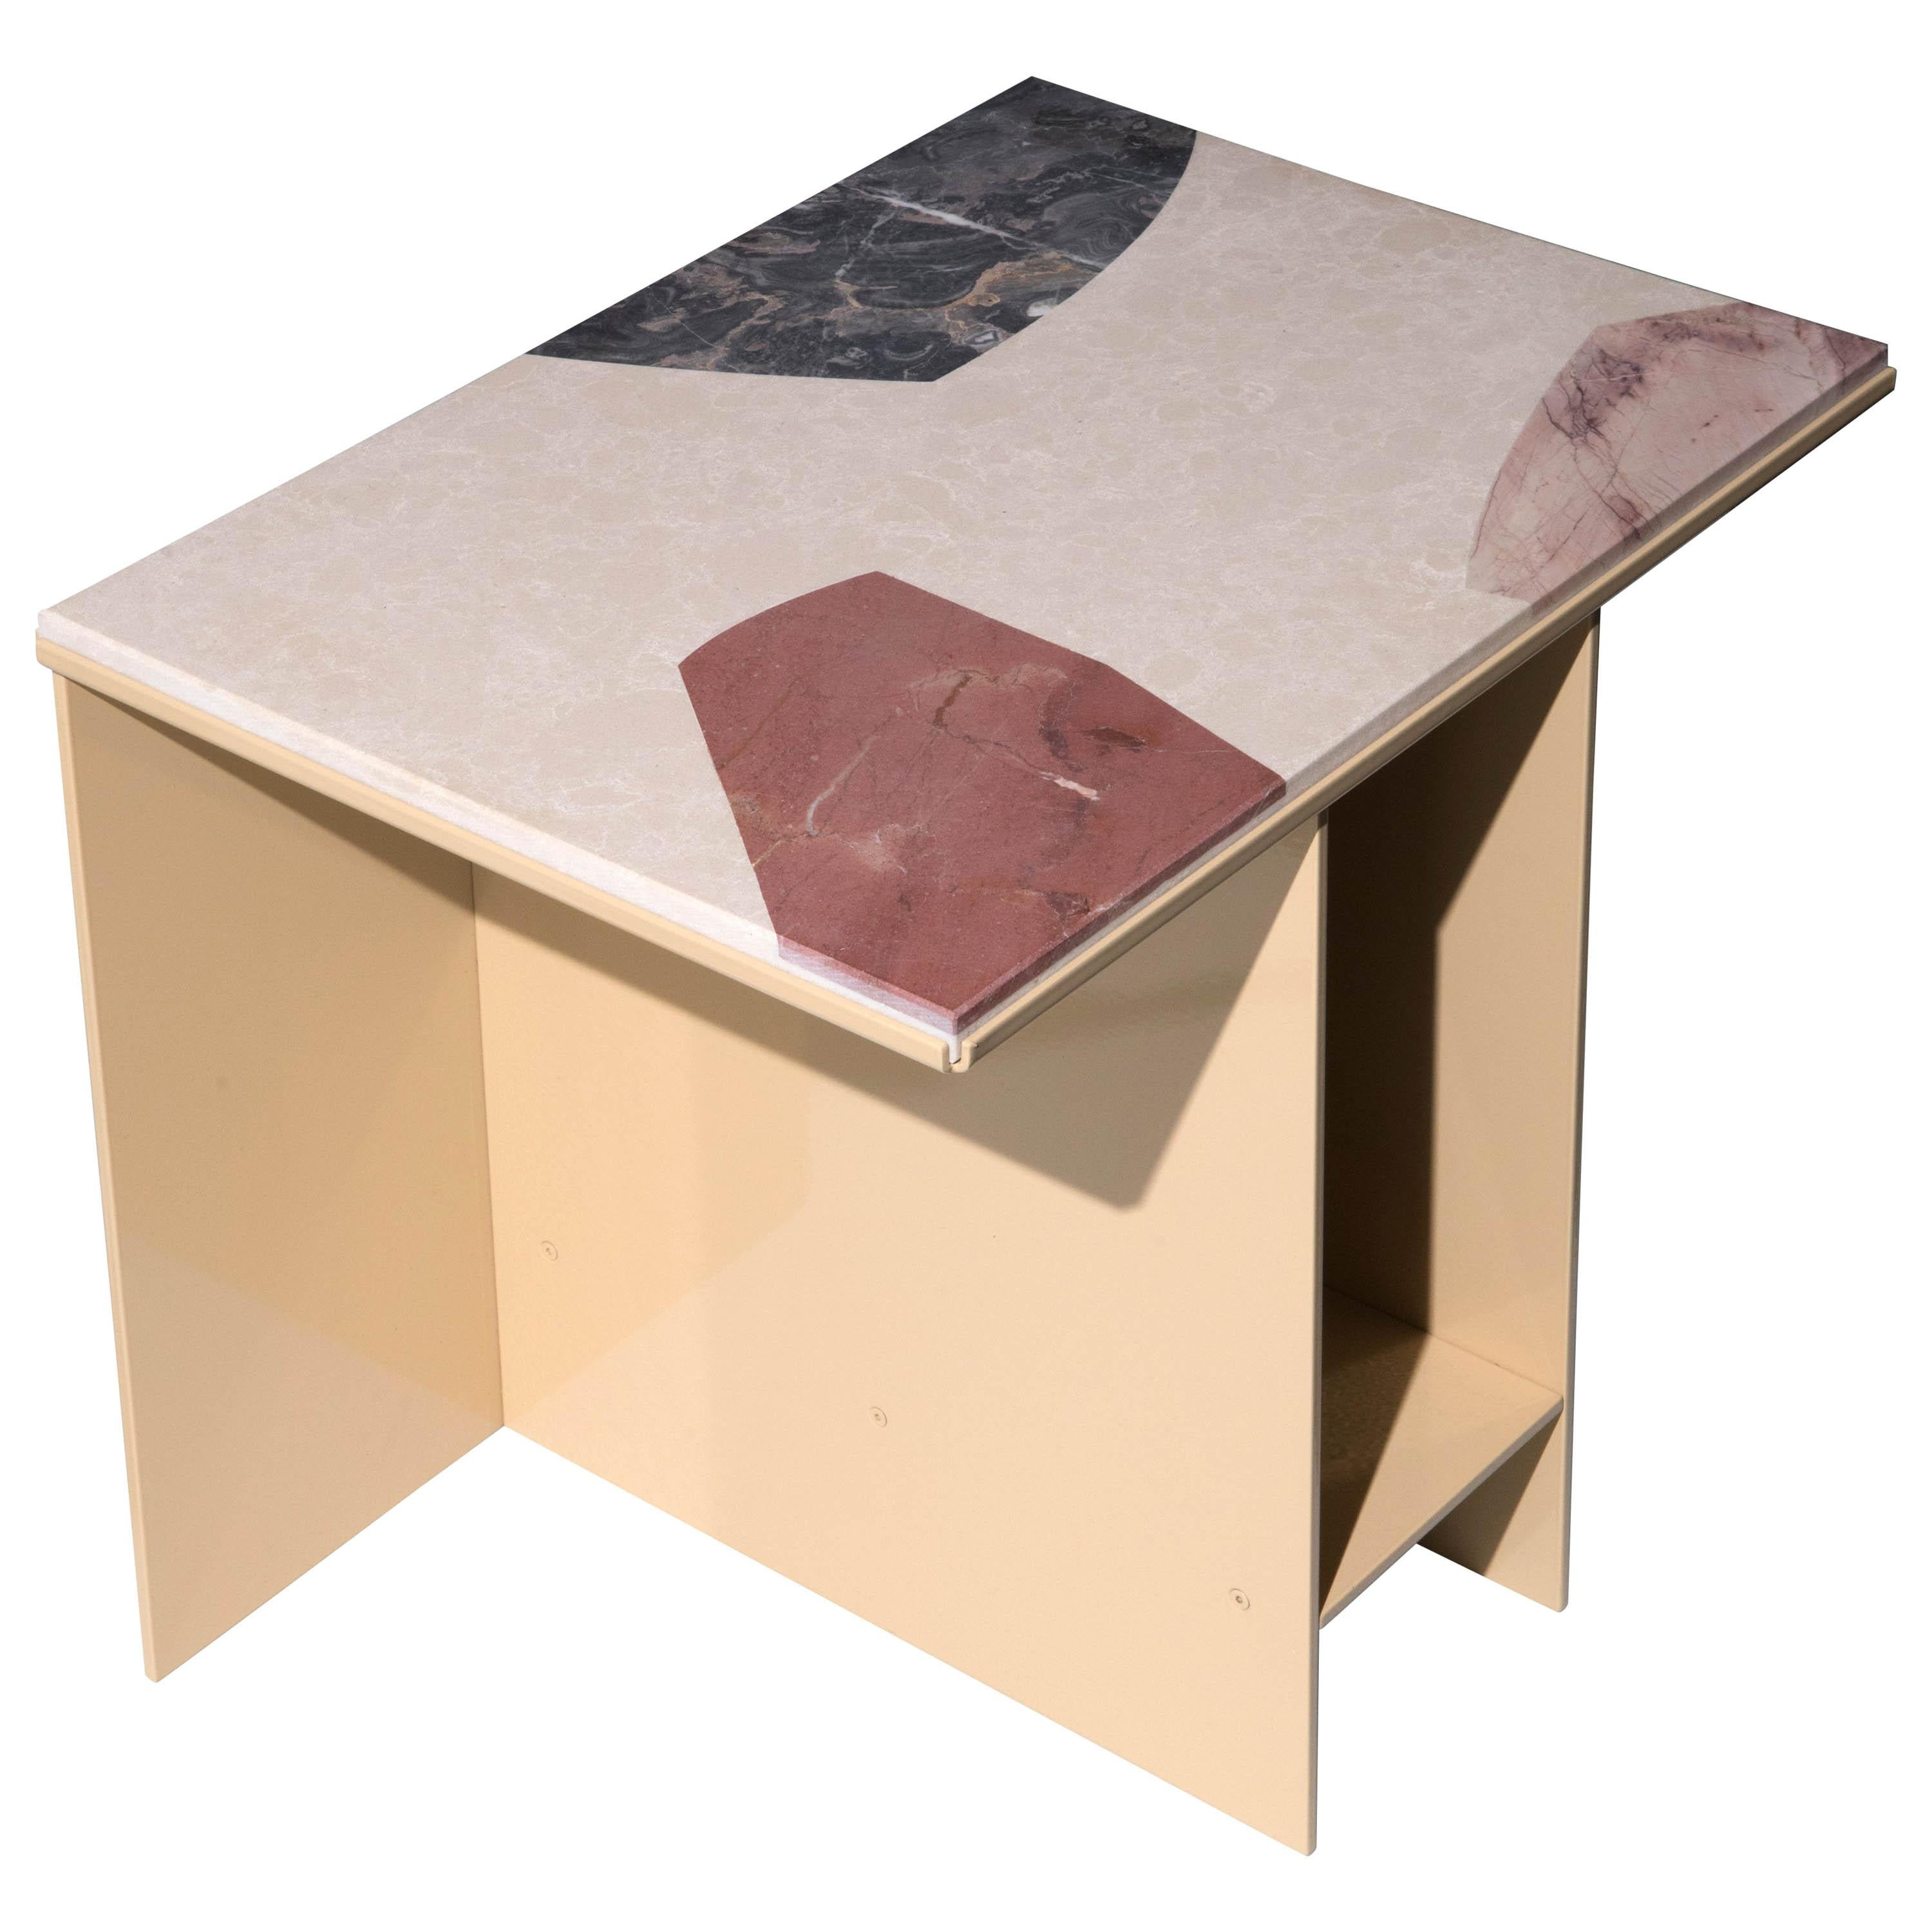 Marble-Topped Cut-Out Uniform Side Table by Other Kingdom